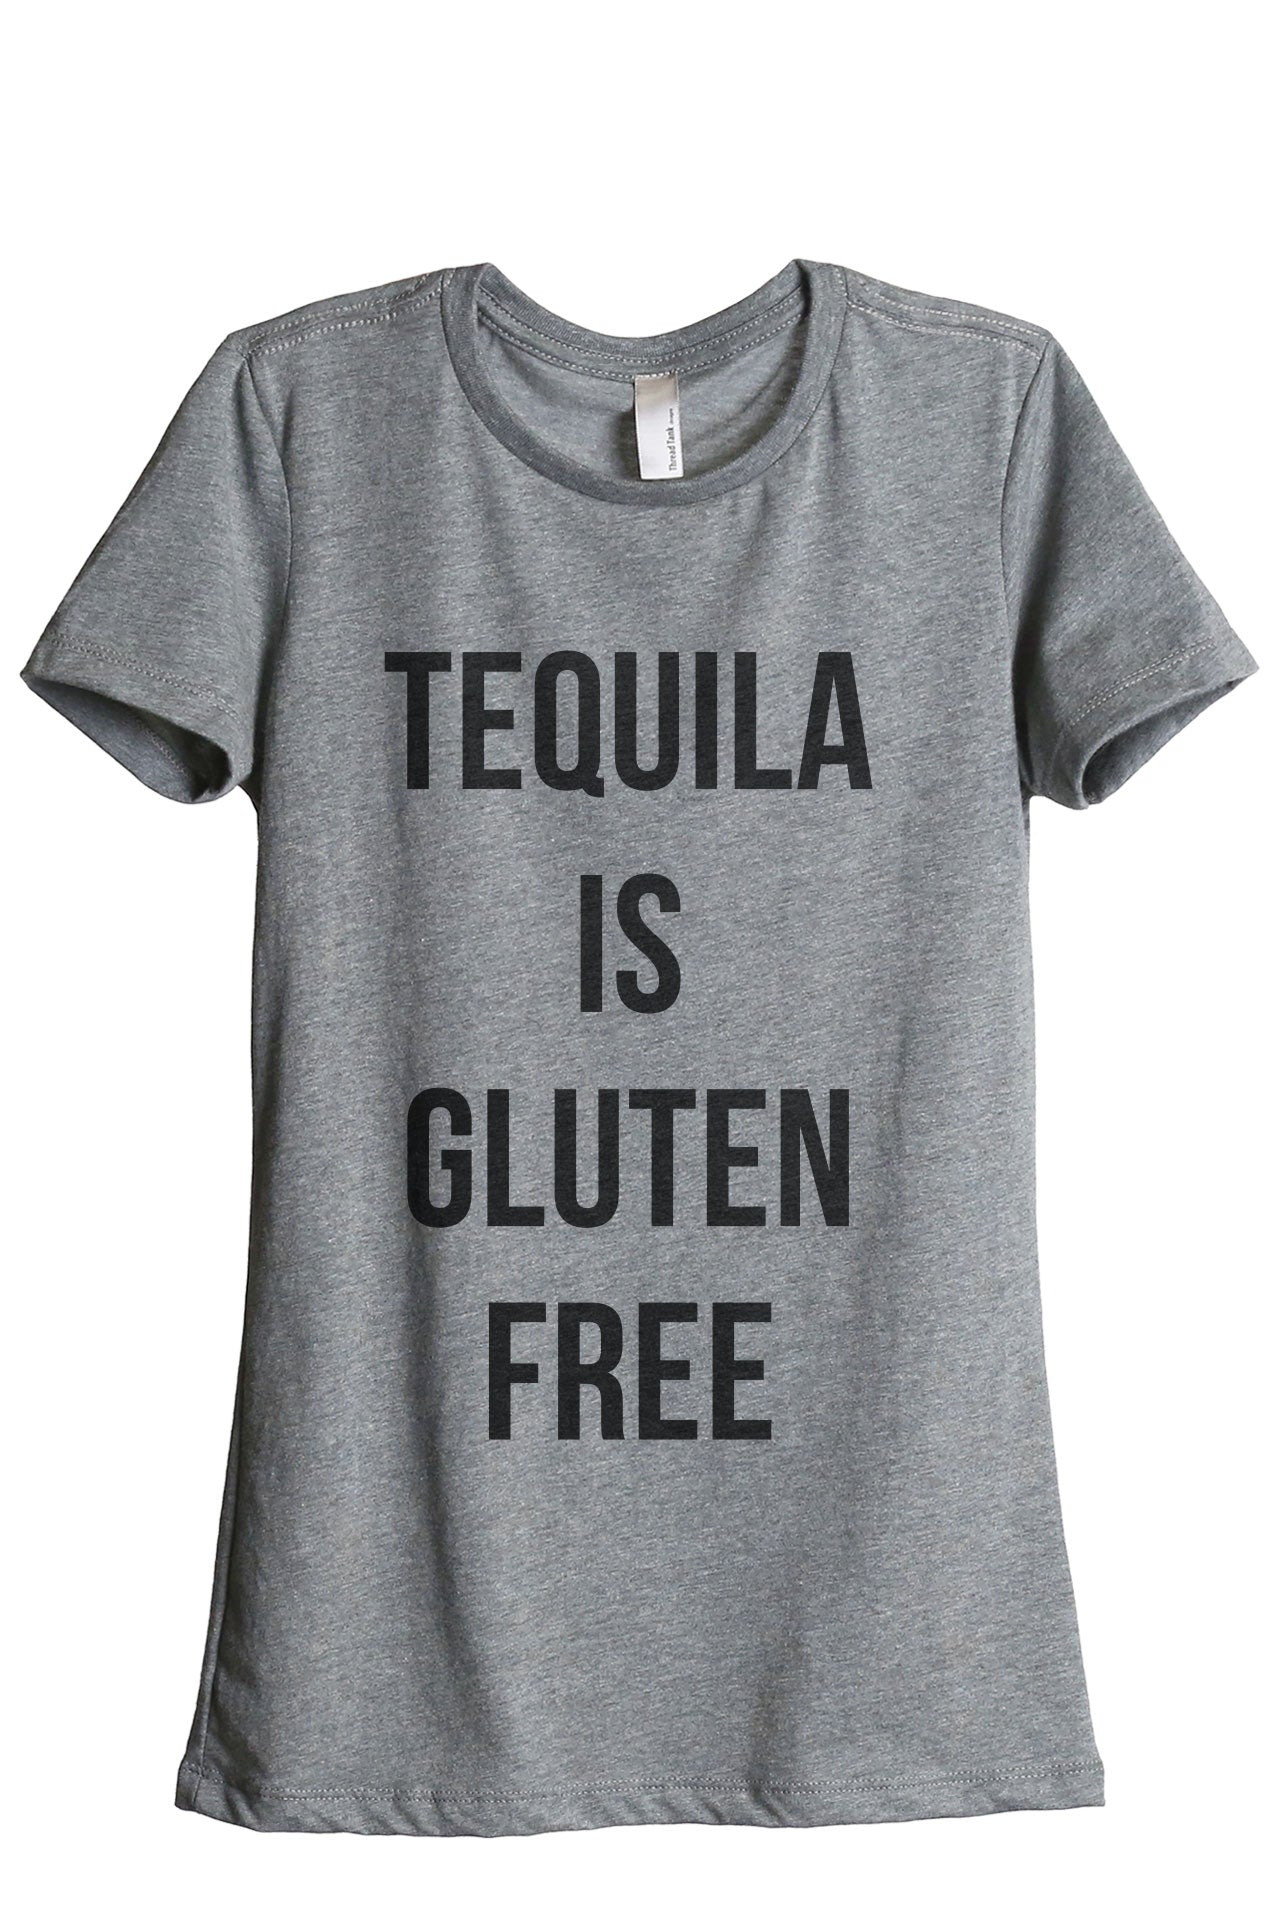 Tequila Is Gluten Free Women's Relaxed Crewneck T-Shirt Top Tee Heather Grey